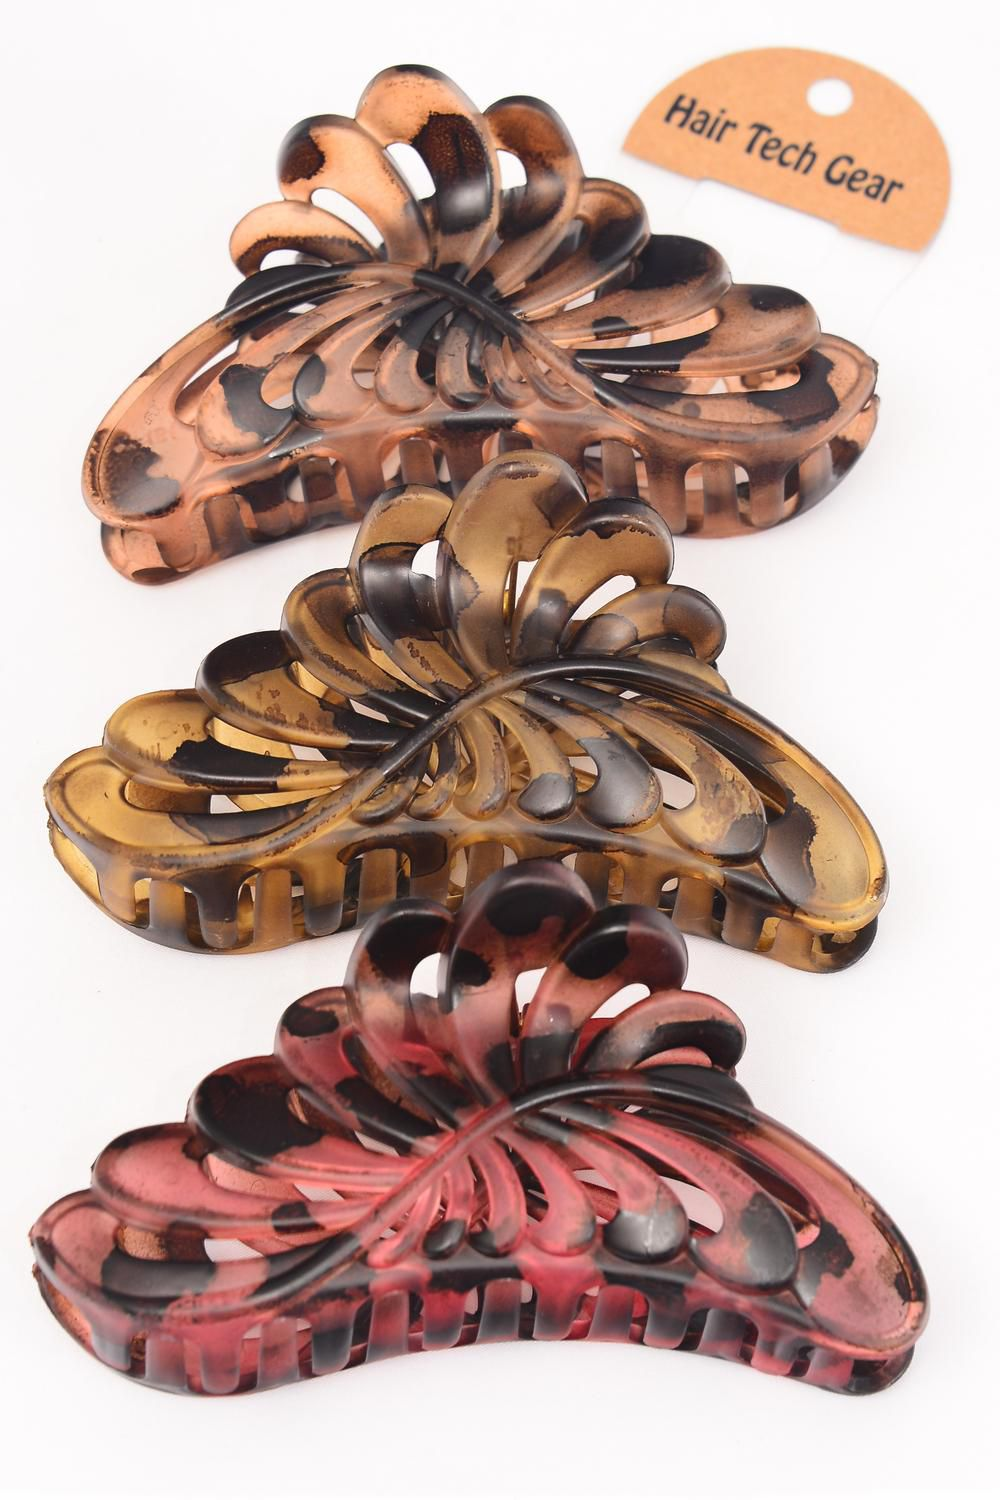 Jaw Clip Acrylic Leaf Tortoise 14 cm Wide Leopard Print/DZ Size-14 cm Wide,4 of each Color Mix,Hang Tag & OPP Bag & UPC Code